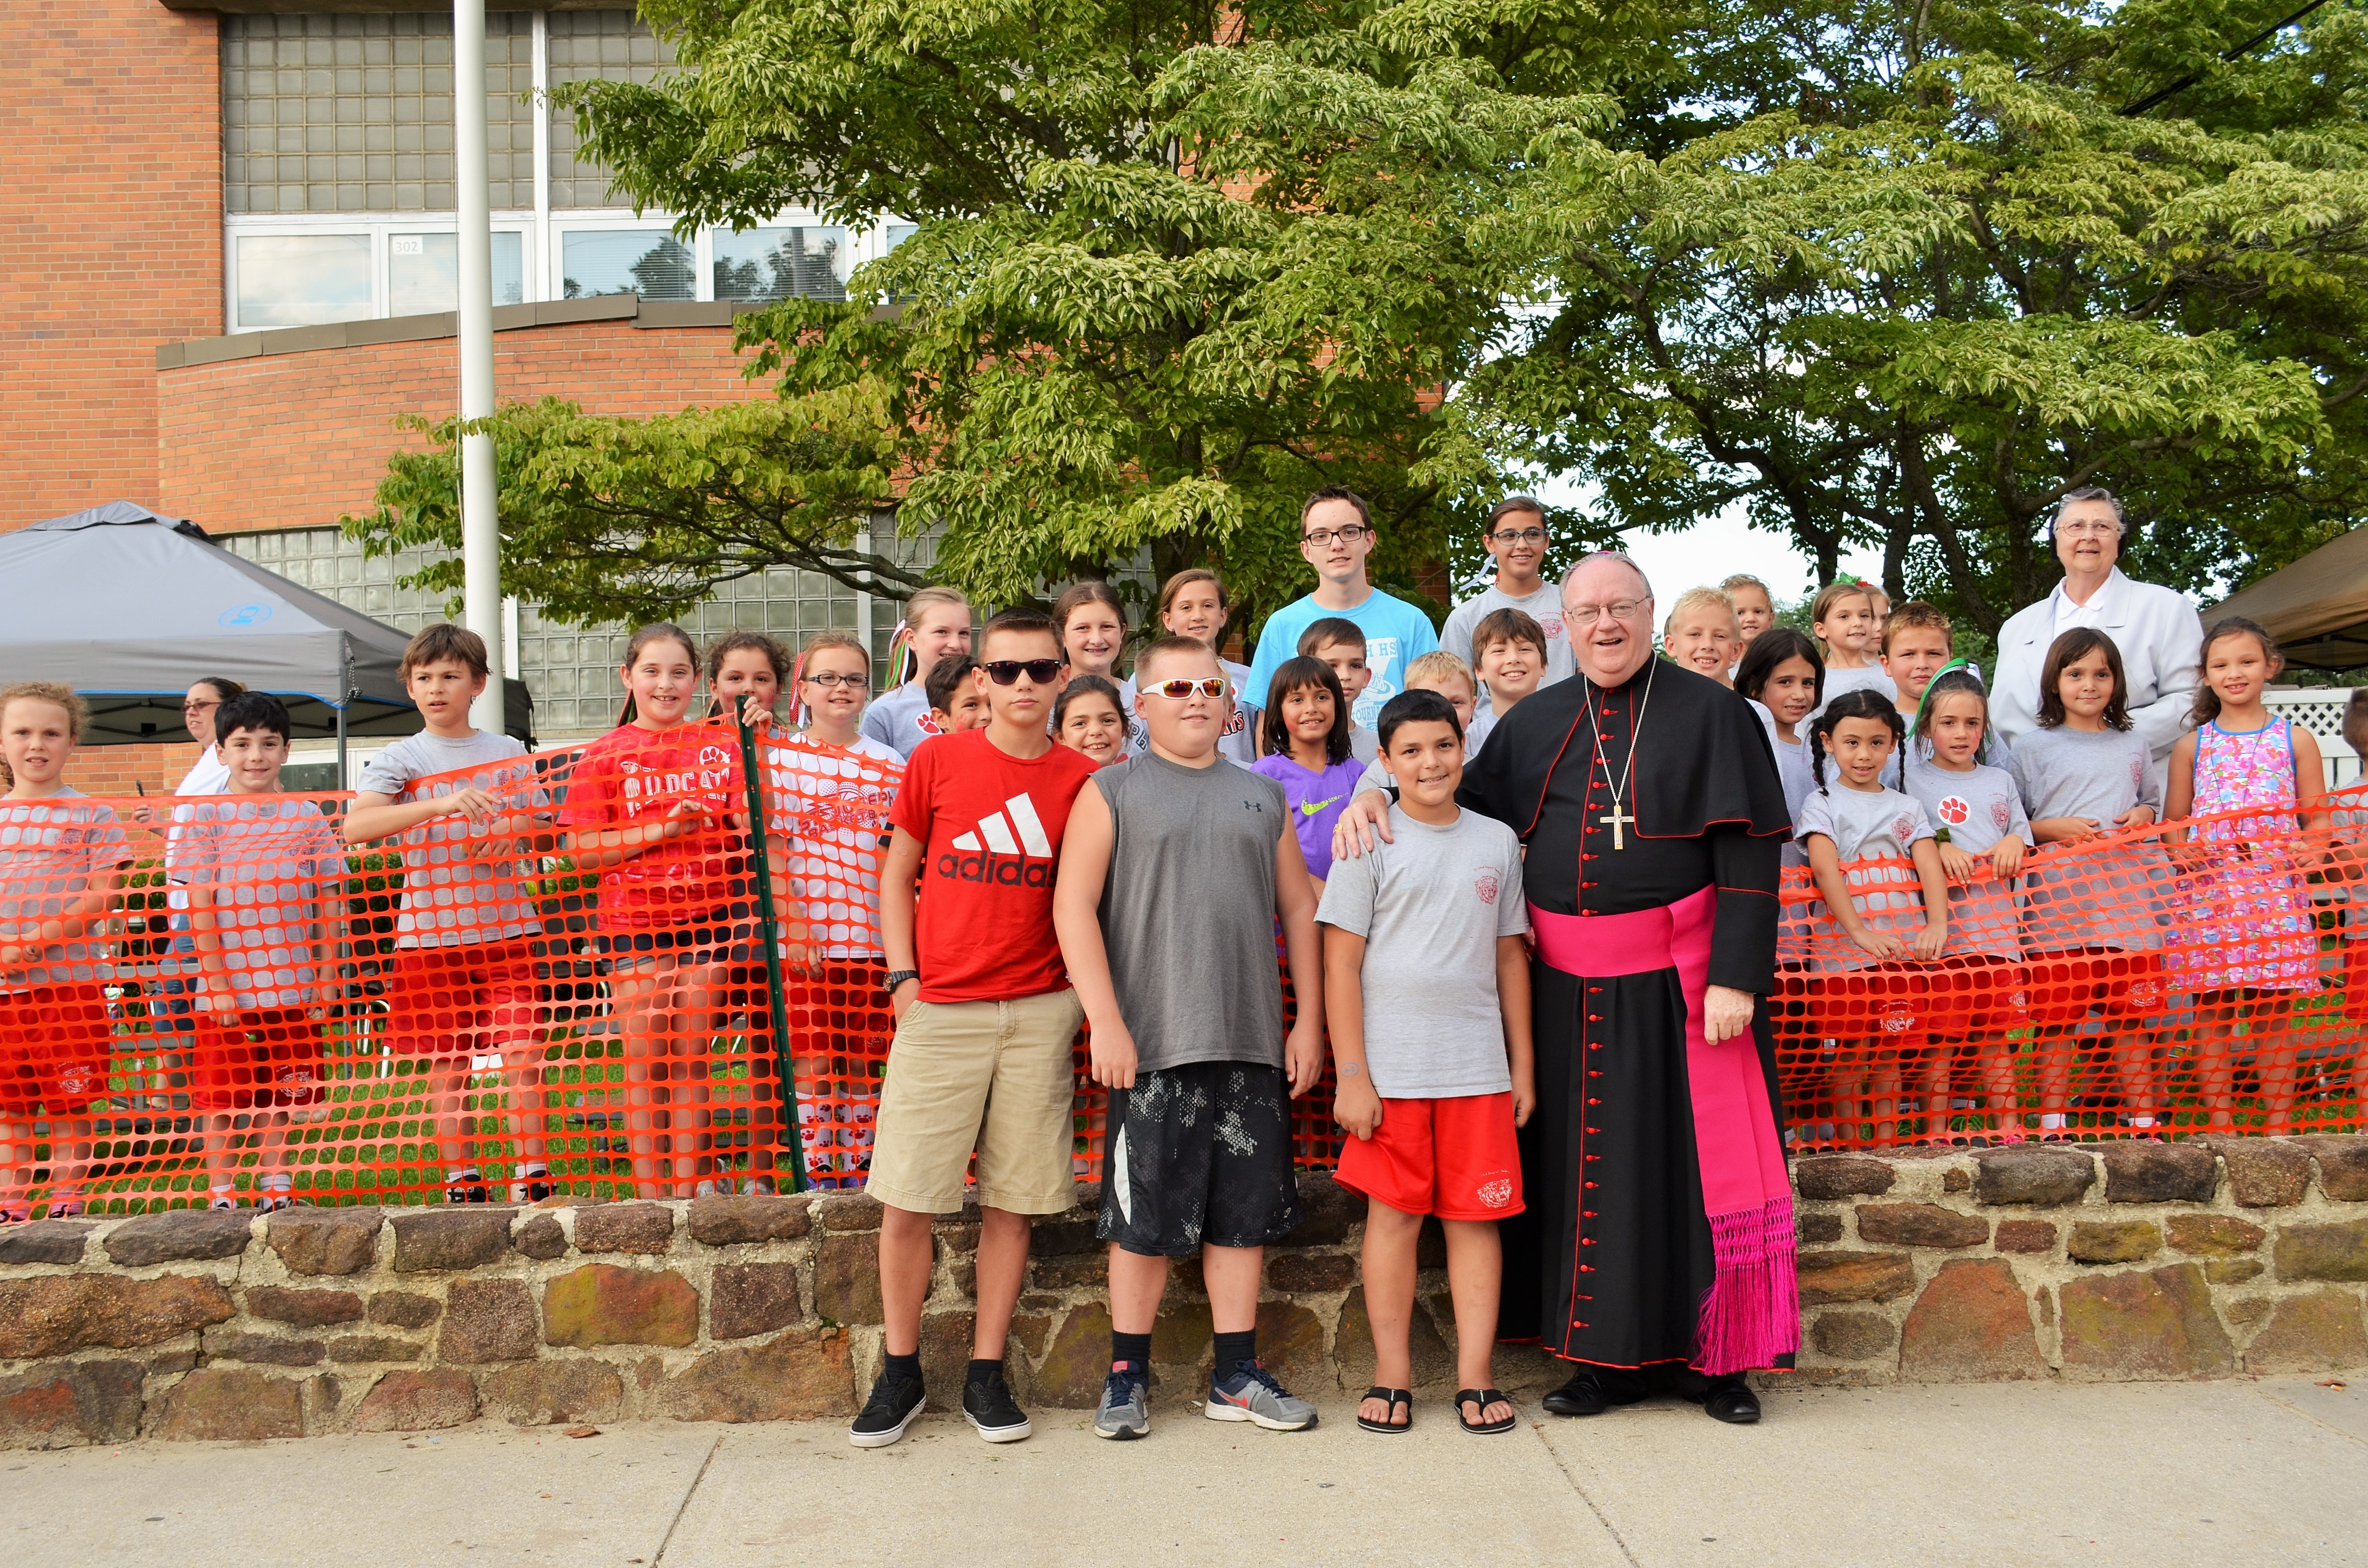 Our Lady of Mt. Carmel Festival 2015